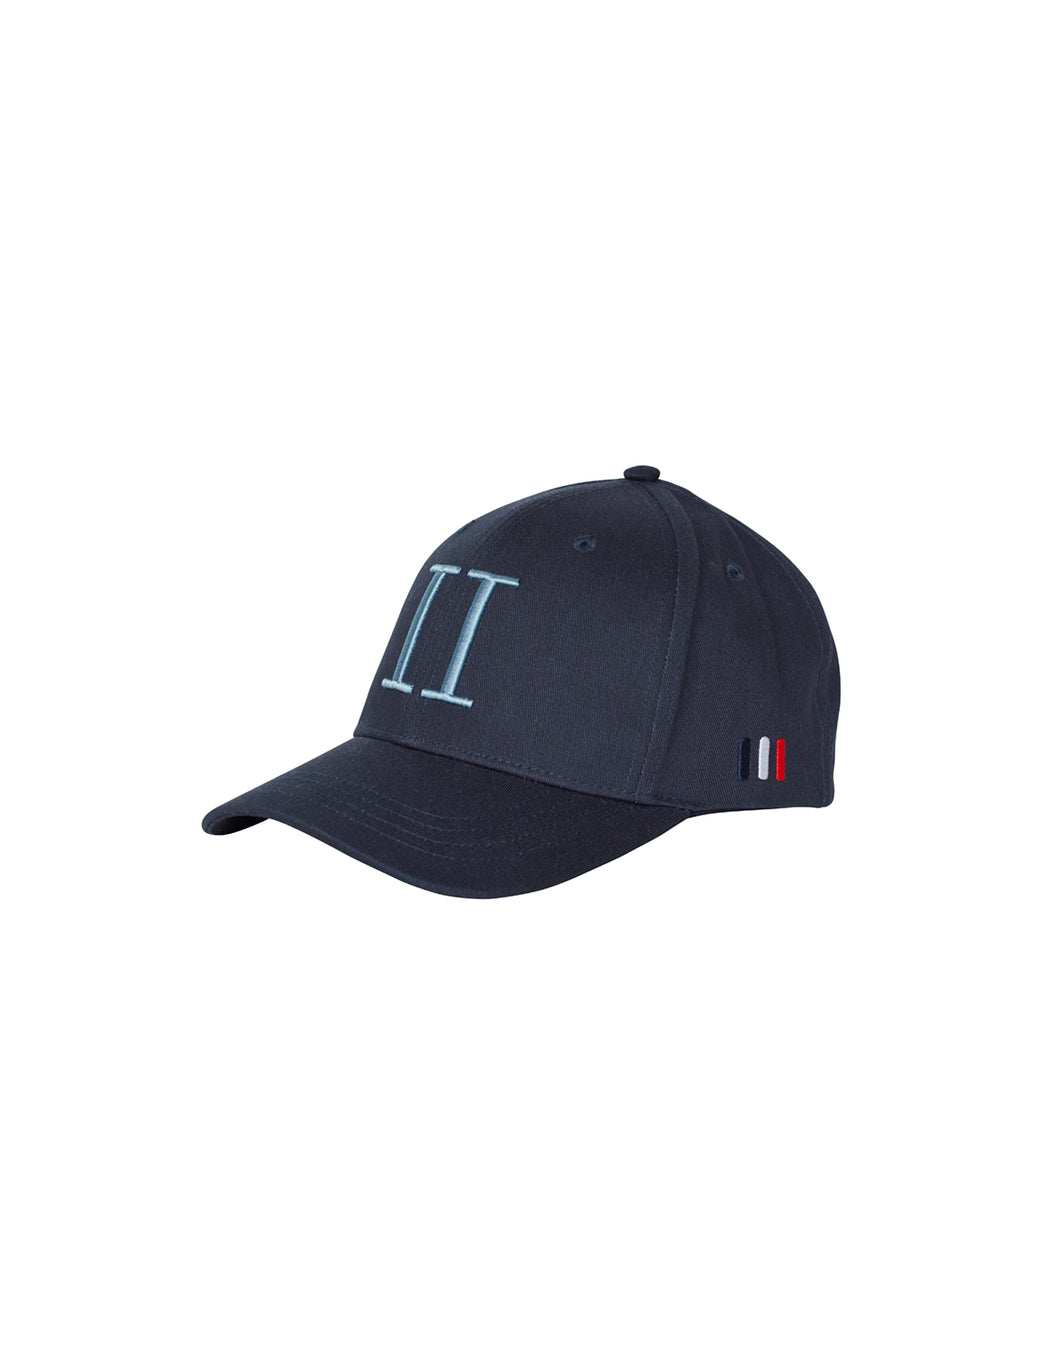 Les Deux ENCORE BASEBALL CAP - 460435 LDM702043 DARK NAVY/DUST BLUE